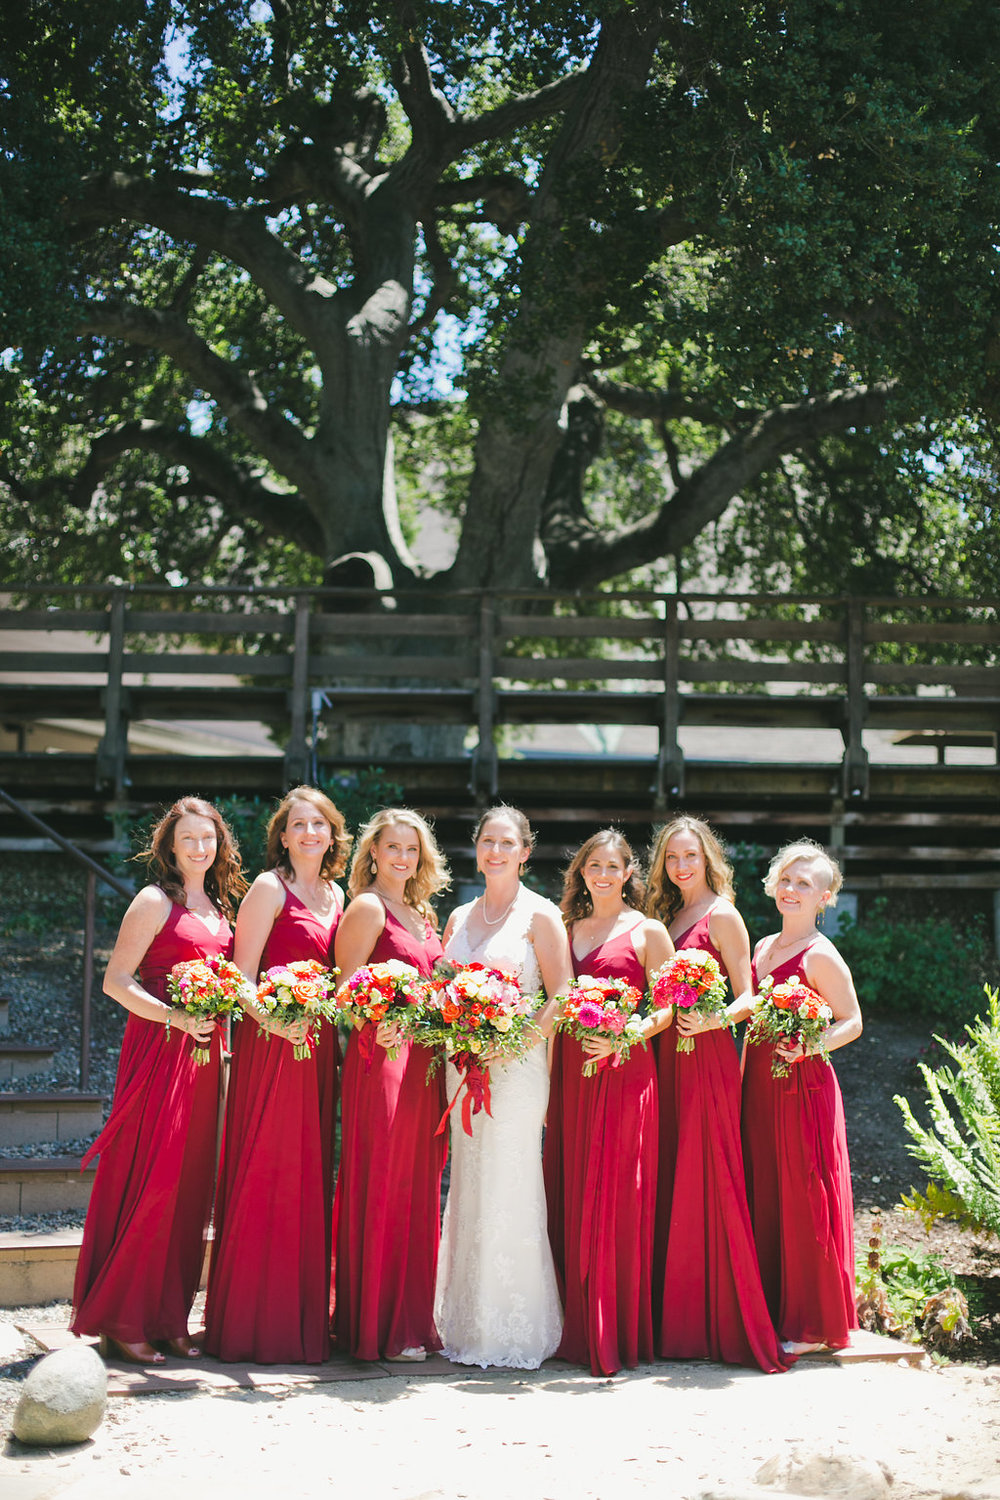 bridesmaids in deep red floor length gowns holding floral bouquets with bride in soft natural glamorous glowing makeup by kim baker beauty san jose california makeup artist